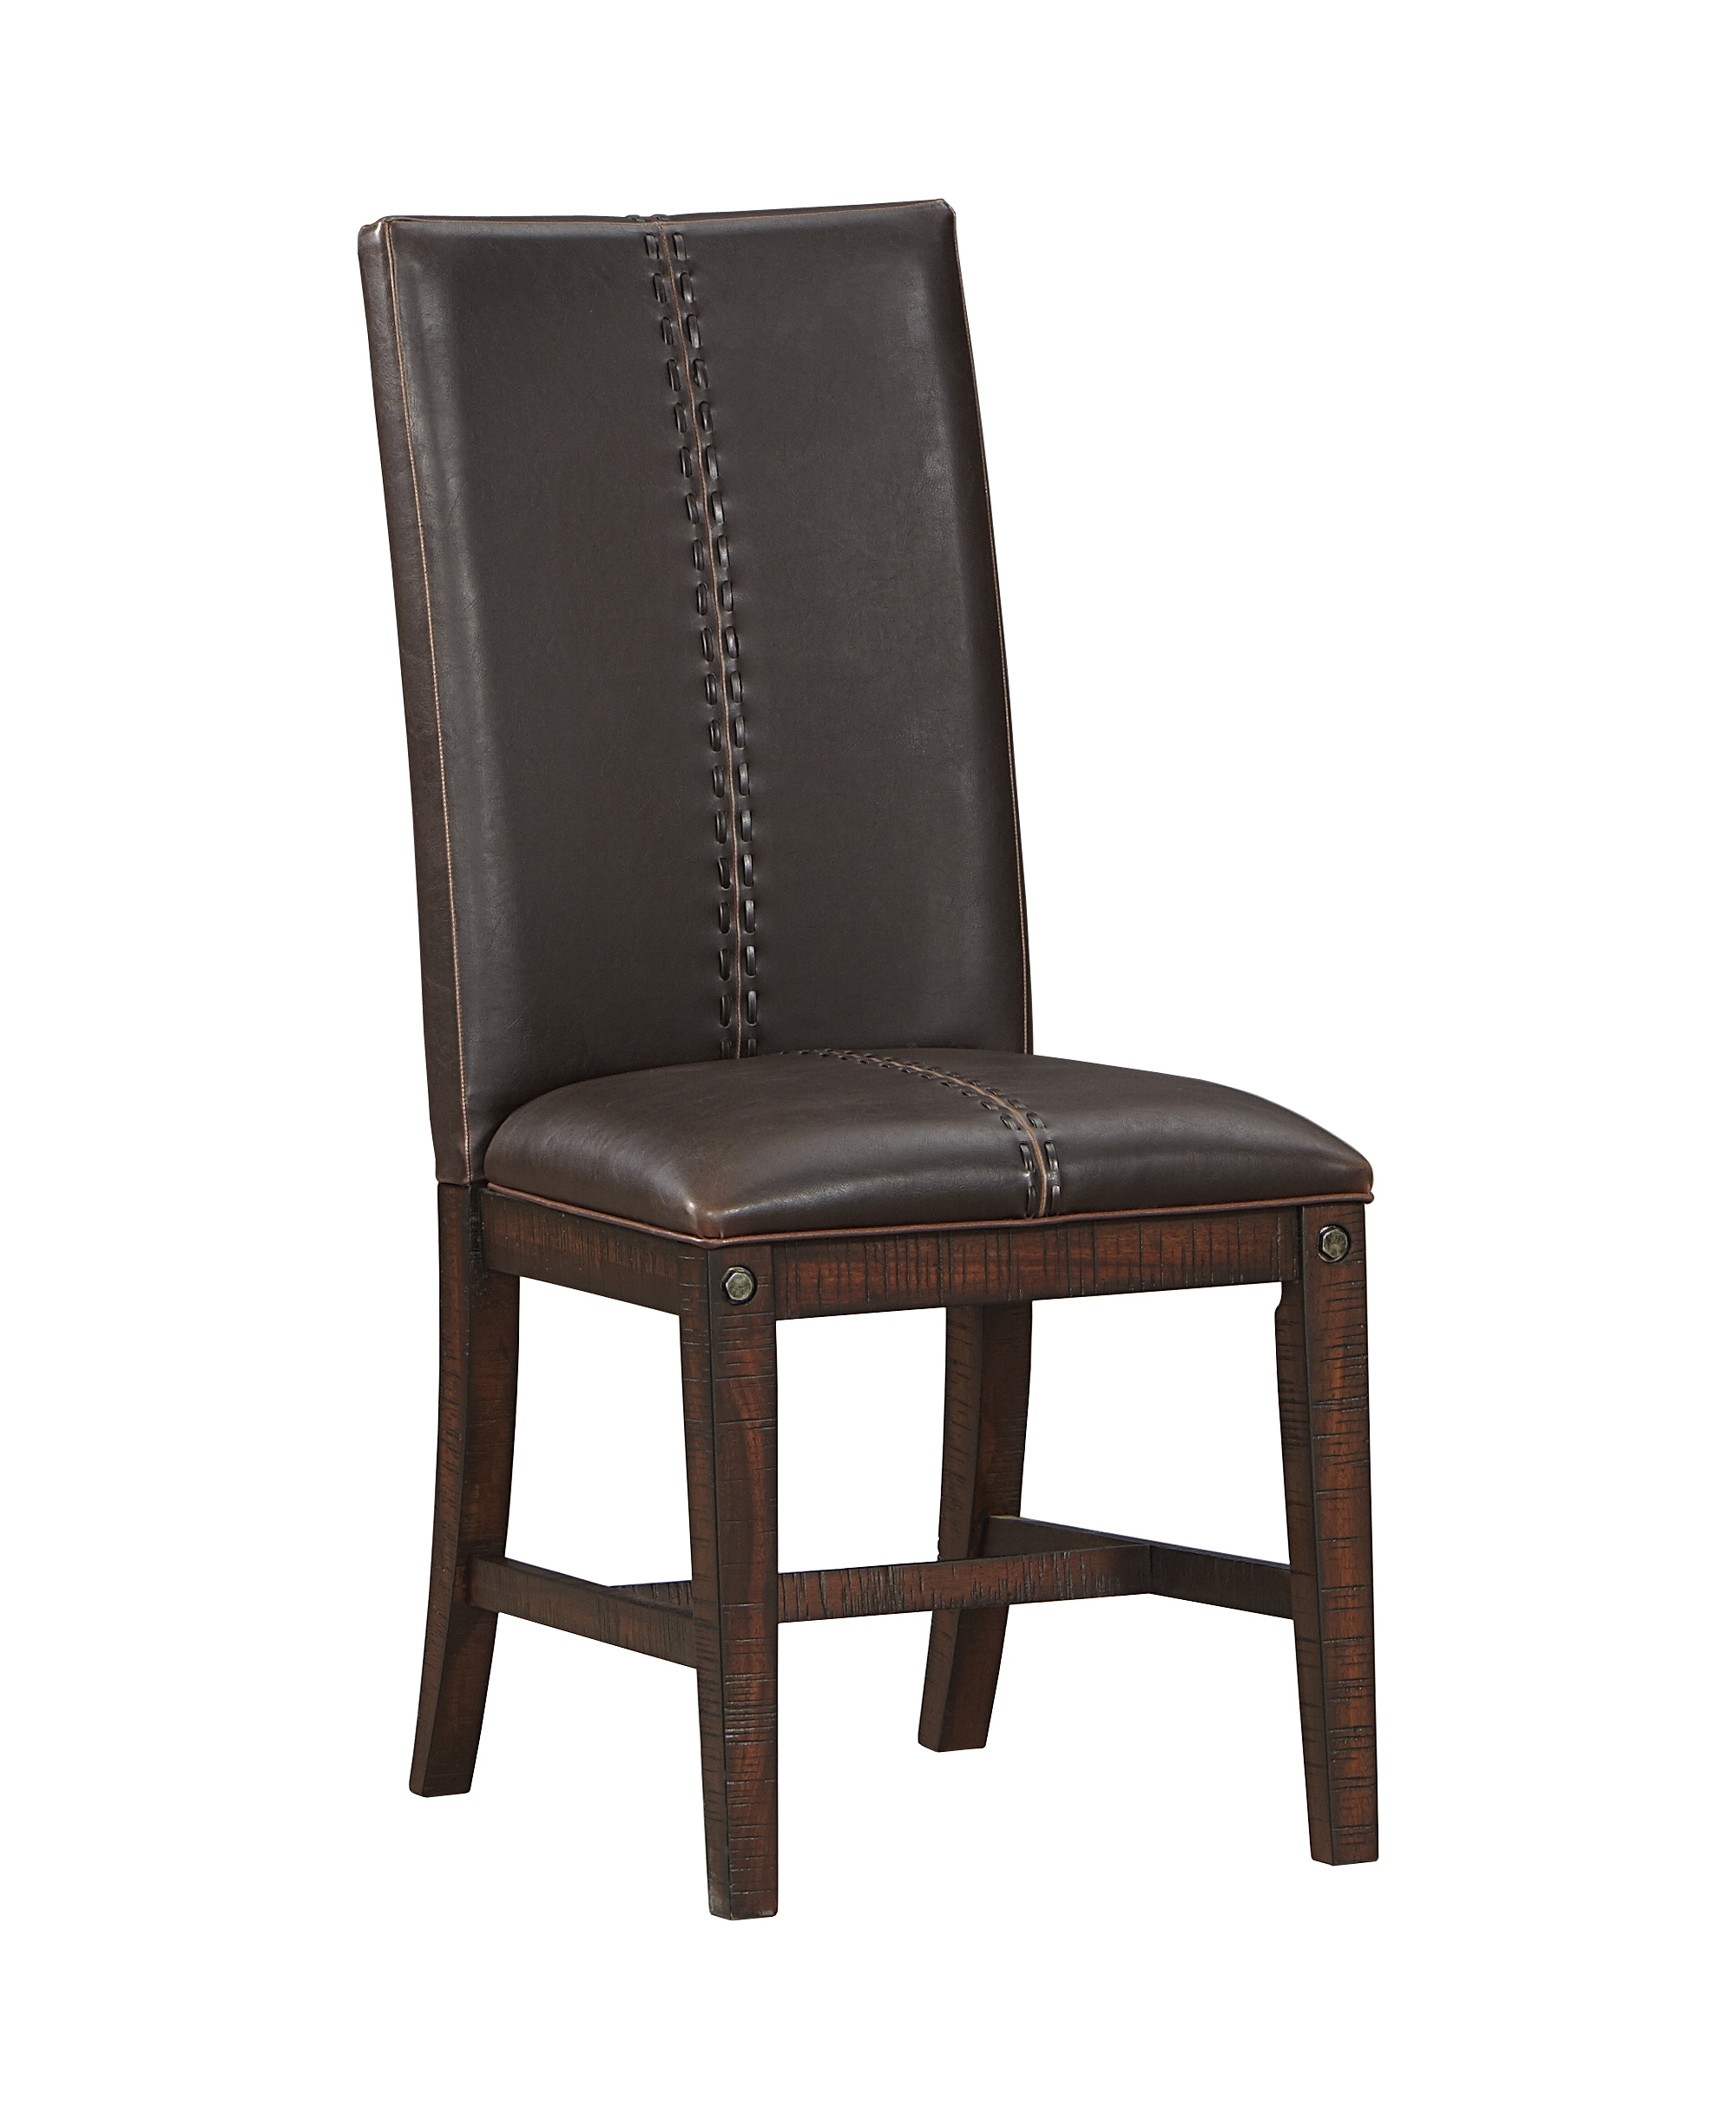 Arden Ridge Parsons Chair